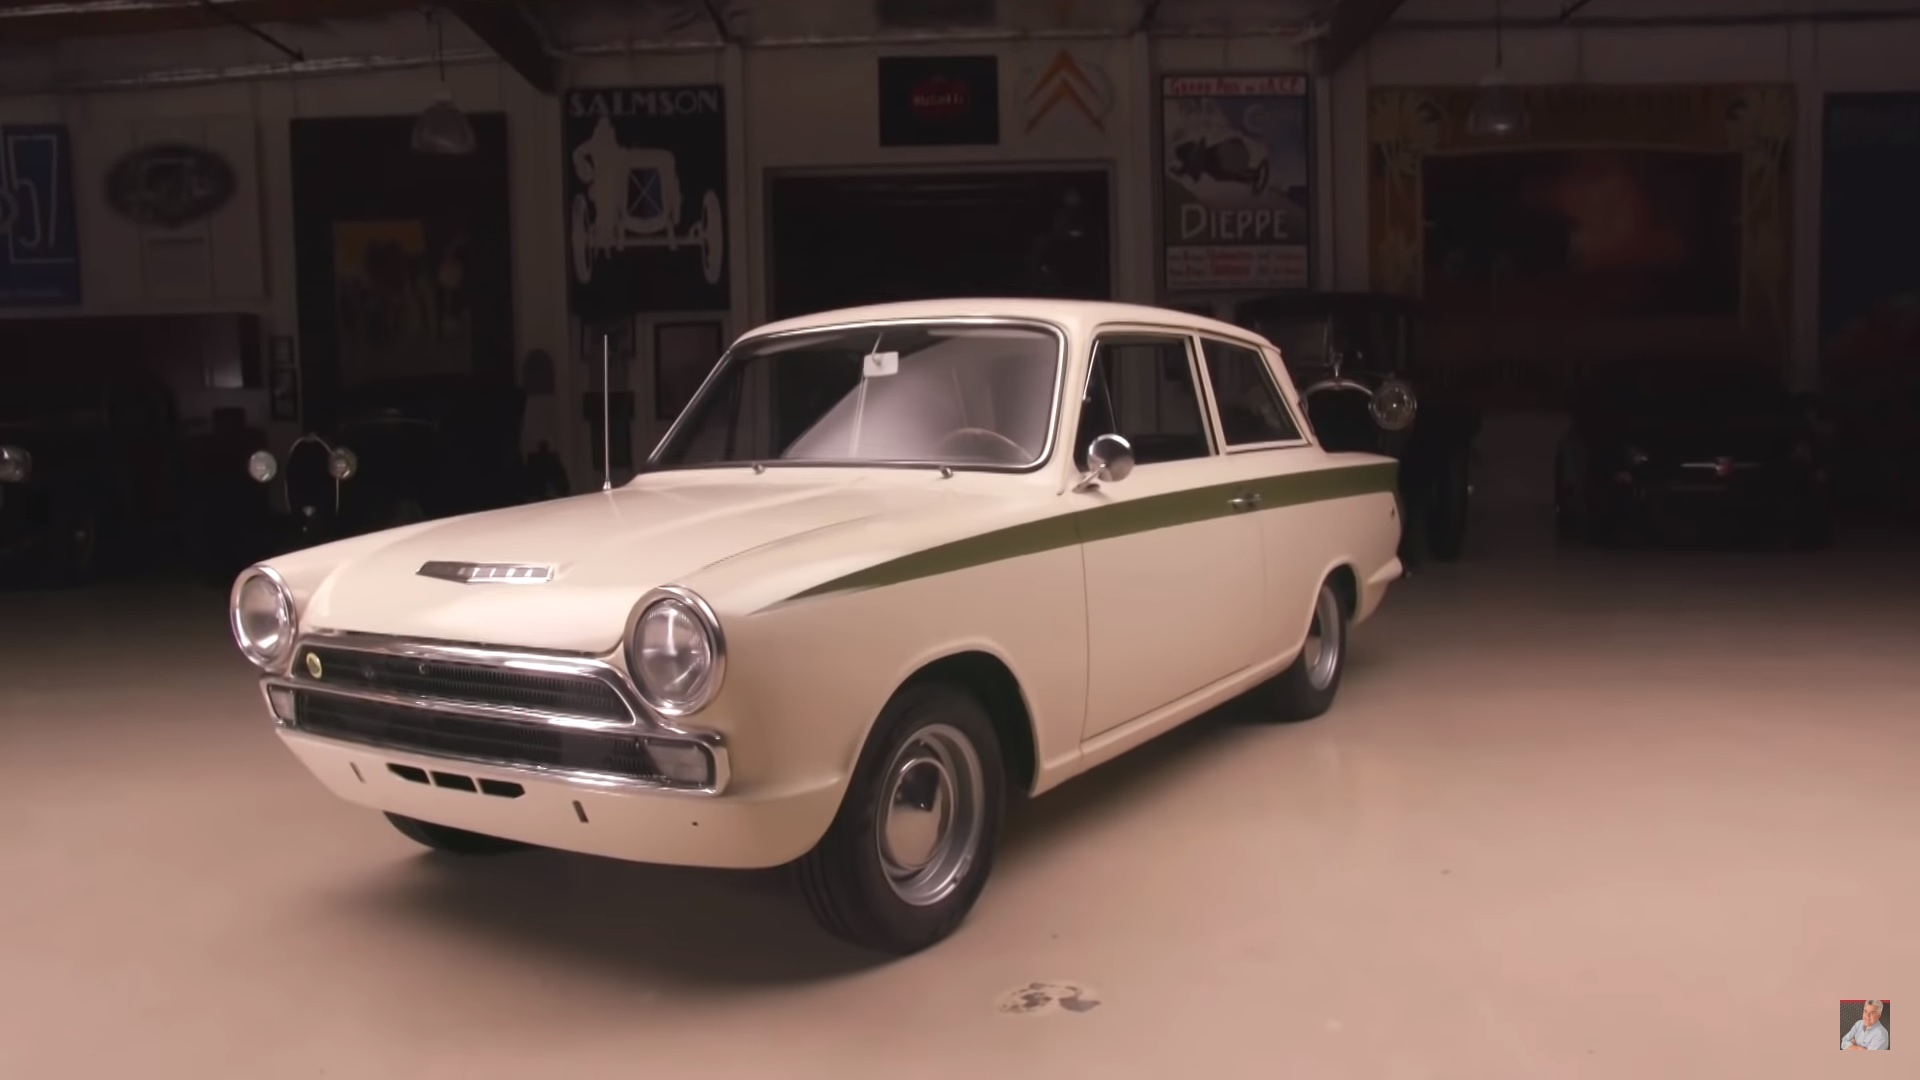 Garage Volkswagen Dieppe Jay Leno S Garage Gives Some Love To The 1966 Lotus Ford Cortina